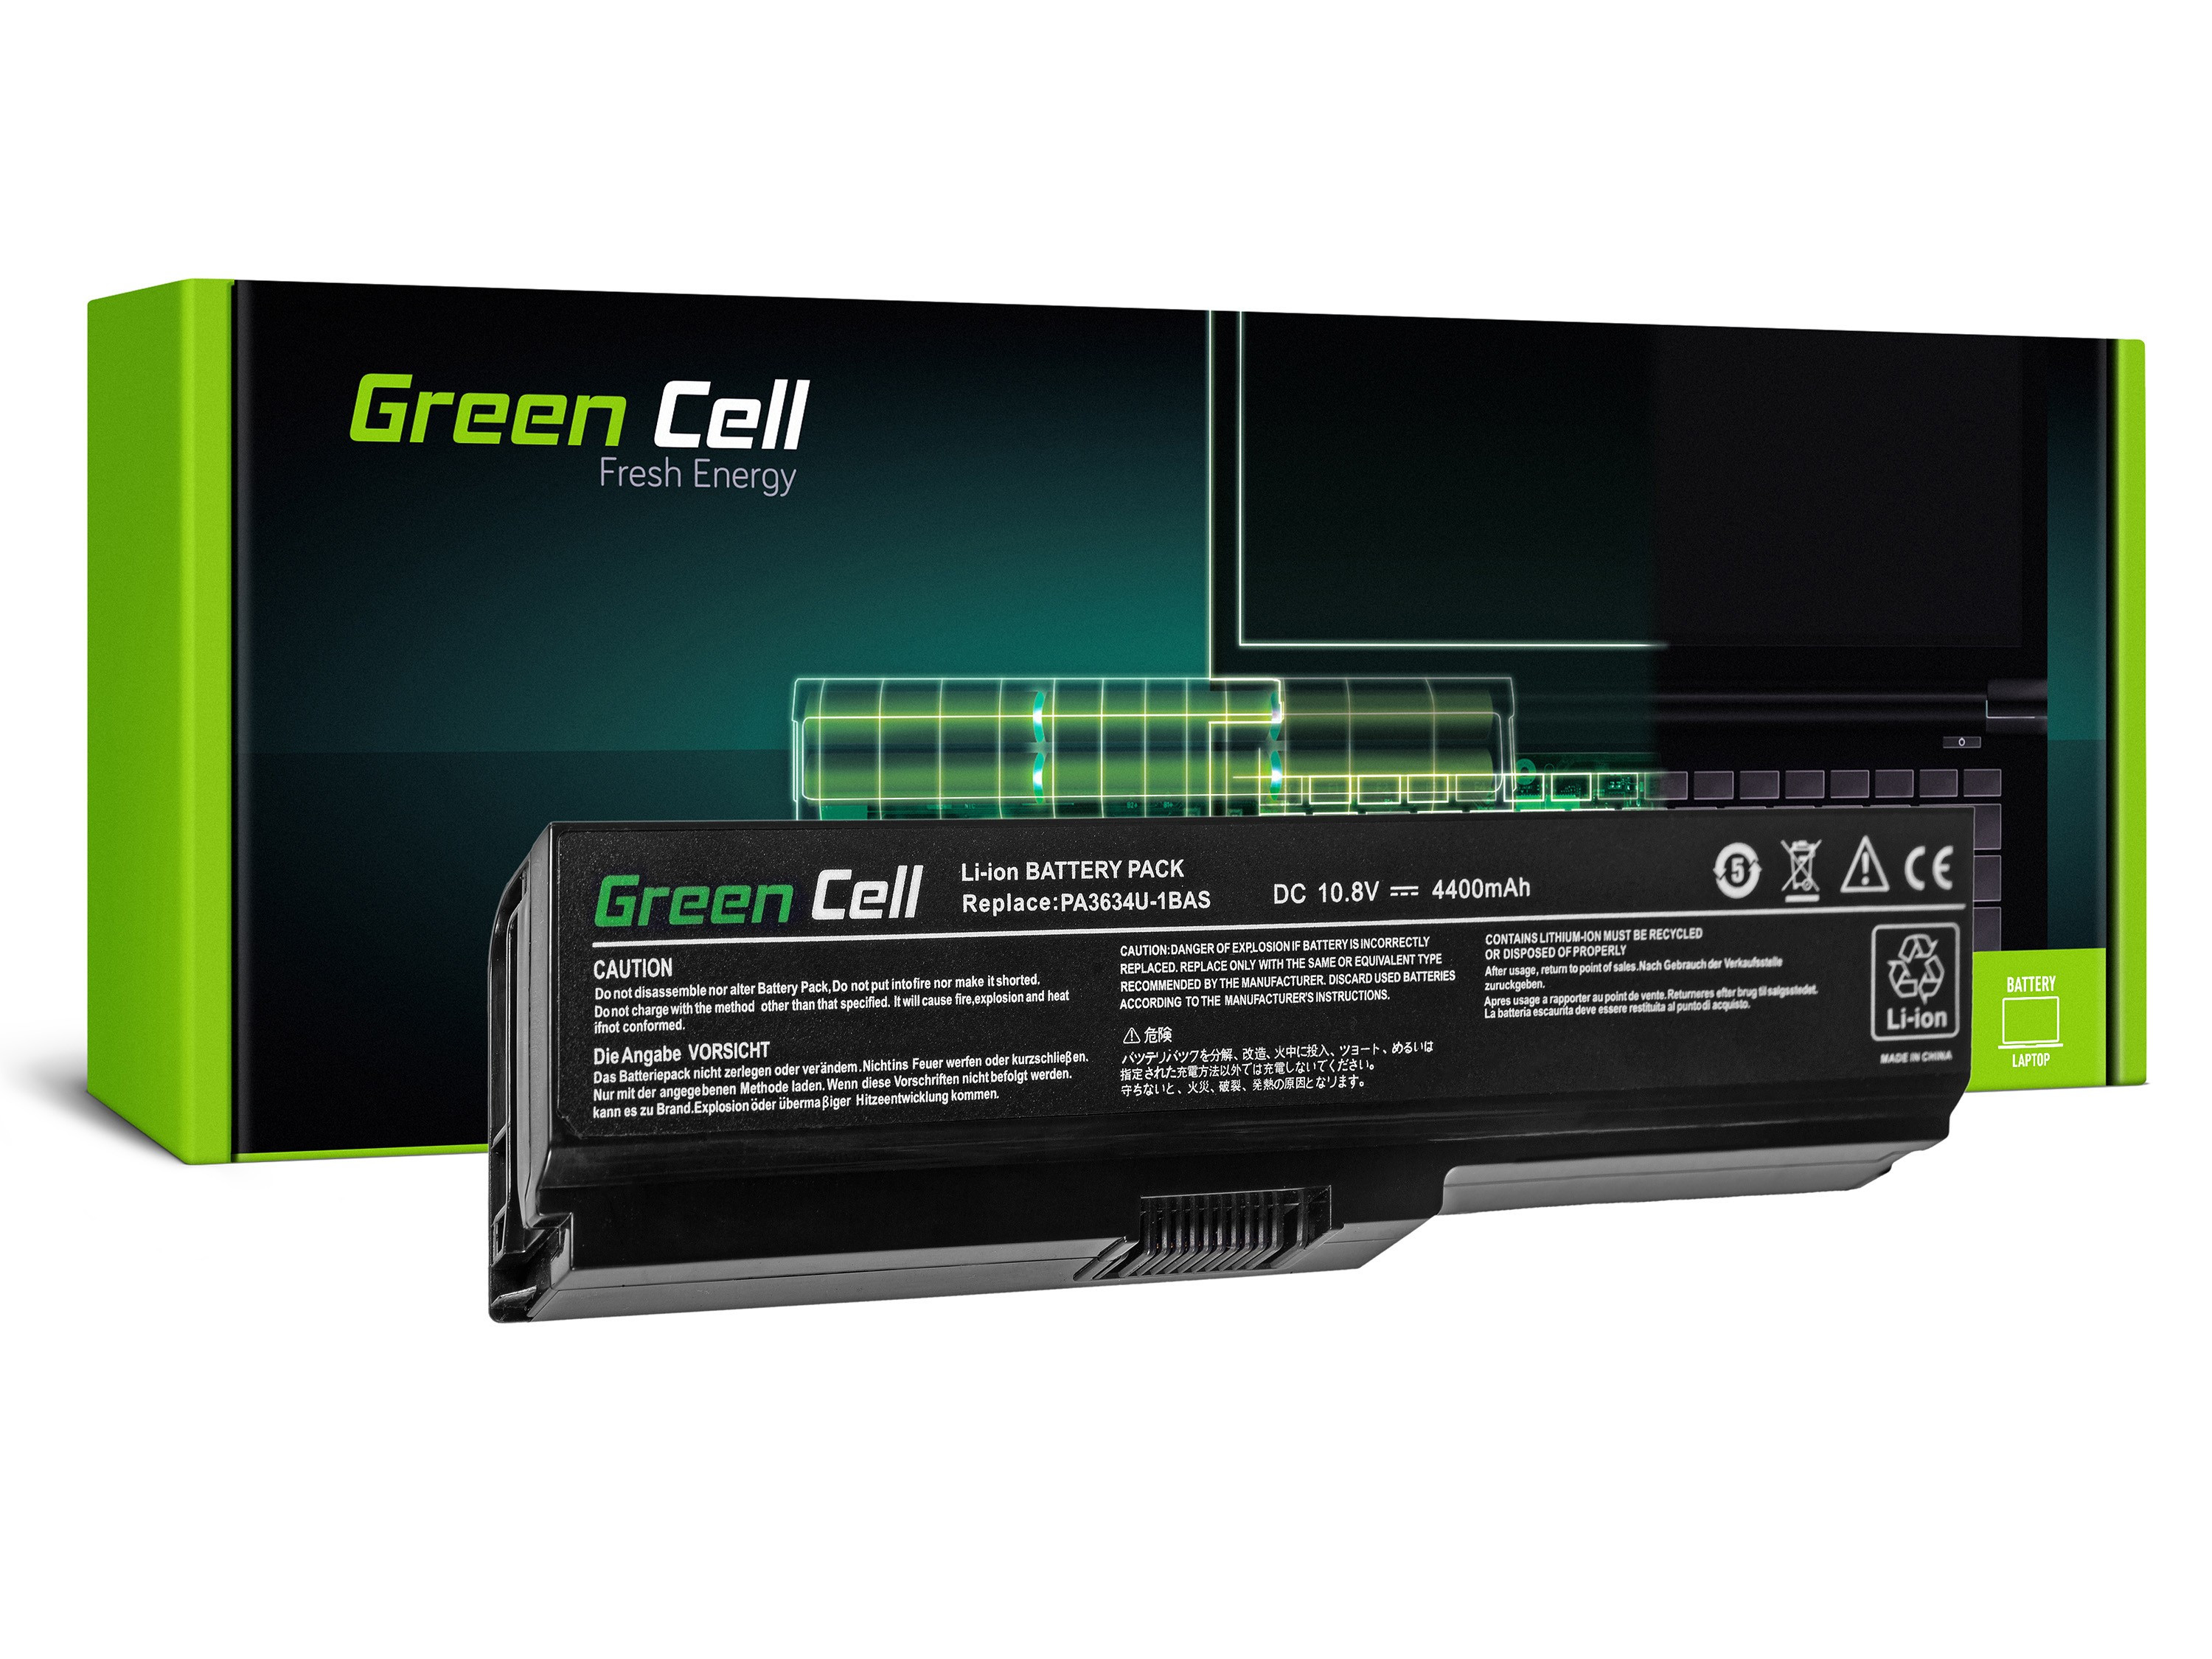 Green Cell TS03V2 Baterie Toshiba Satellite A660 C650 C660 C660D L650 L650D L655 L670 L670D L675 4400mAh Li-ion - neoriginální